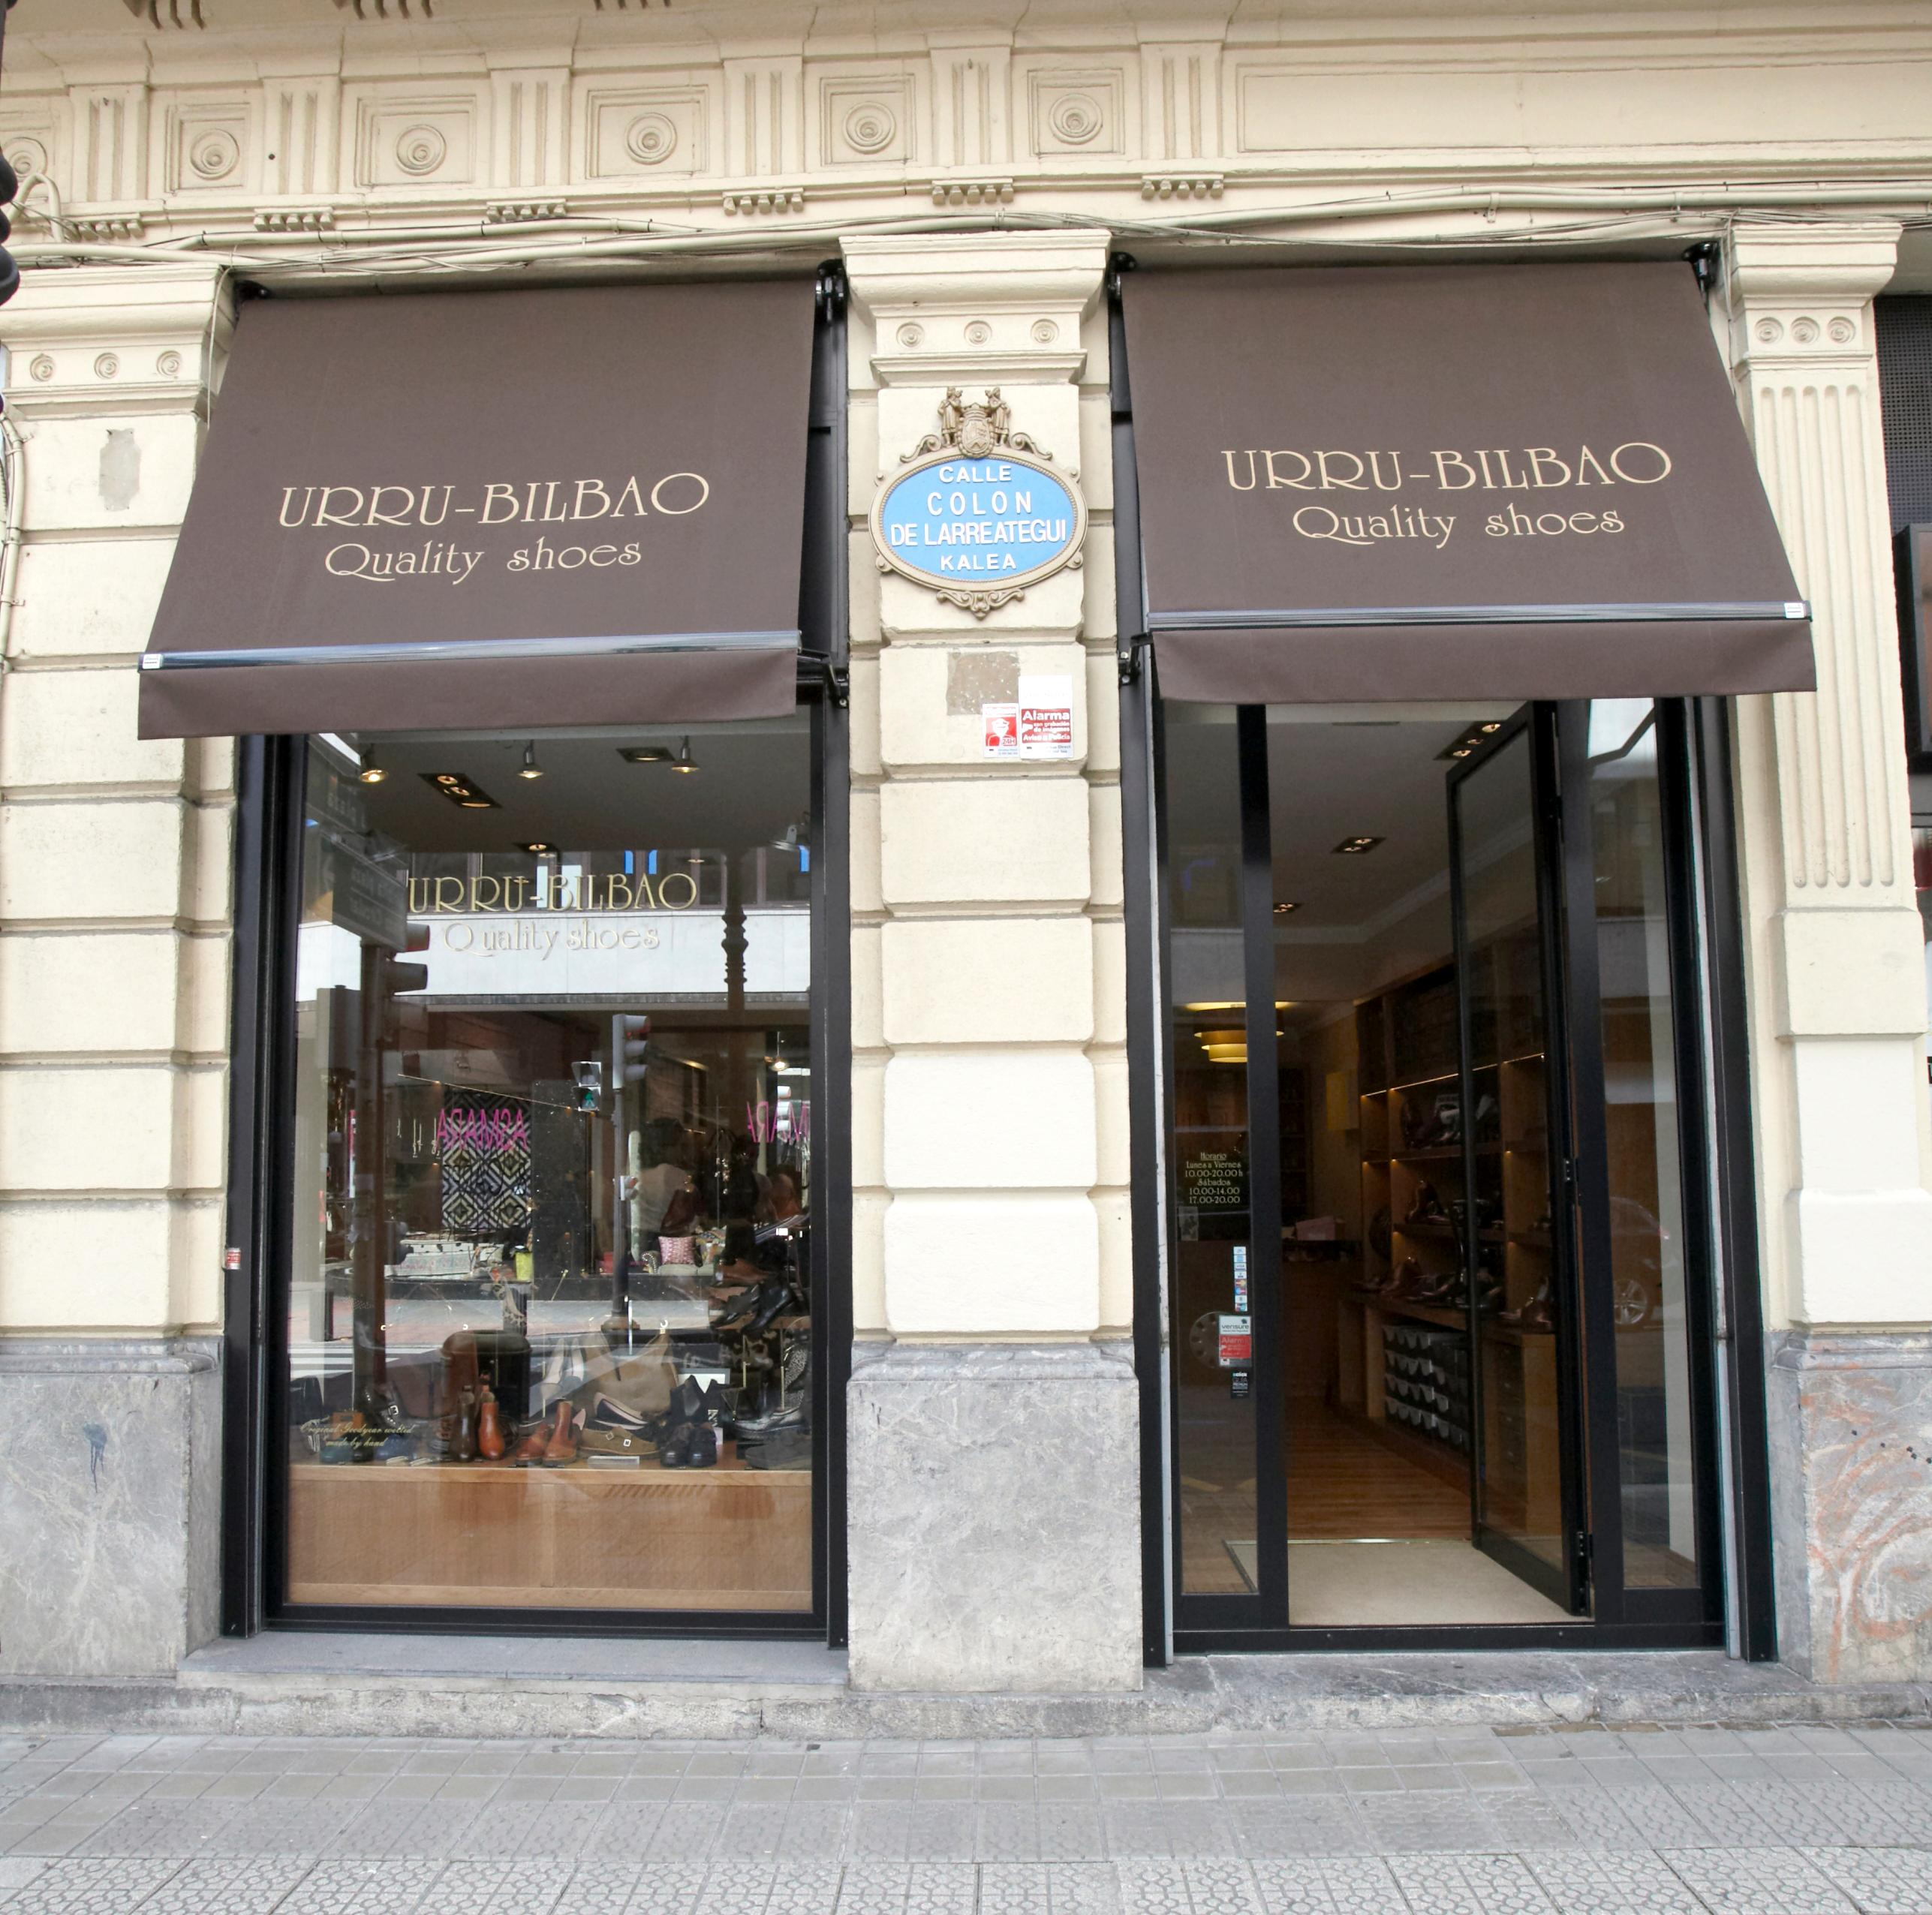 Shoes shop Urru Bilbao